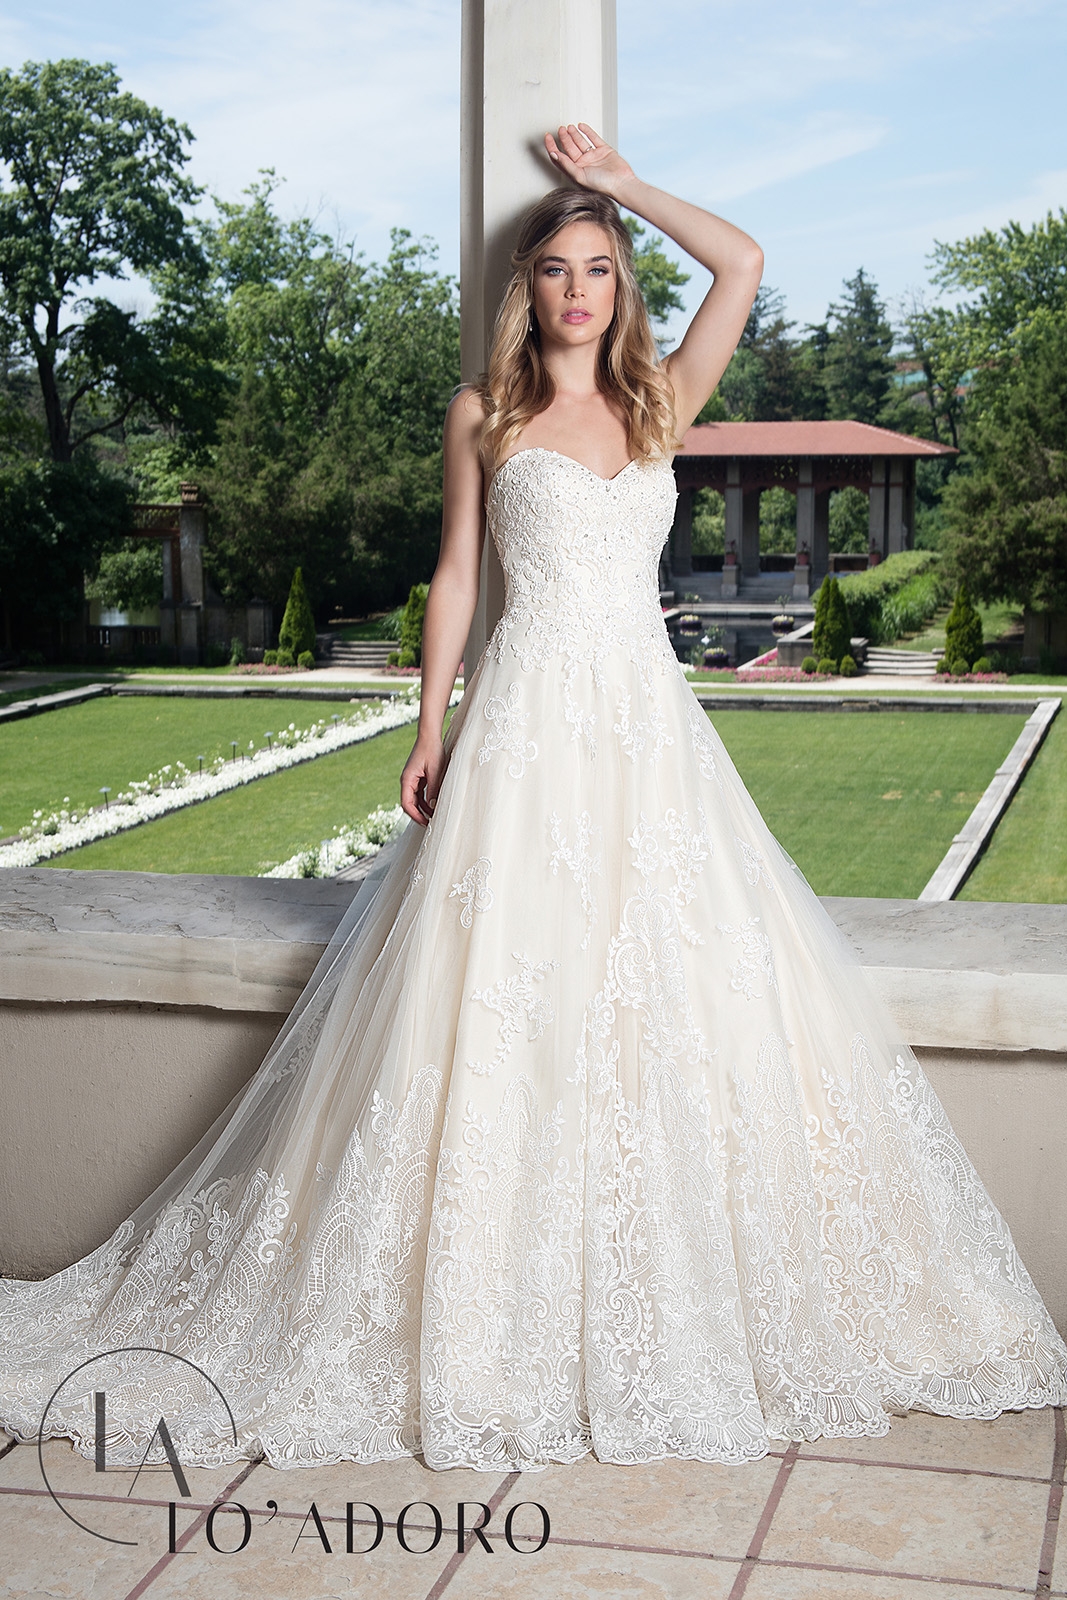 Sweetheart Ball Gowns Lo' Adoro Bridal in Champagne Color